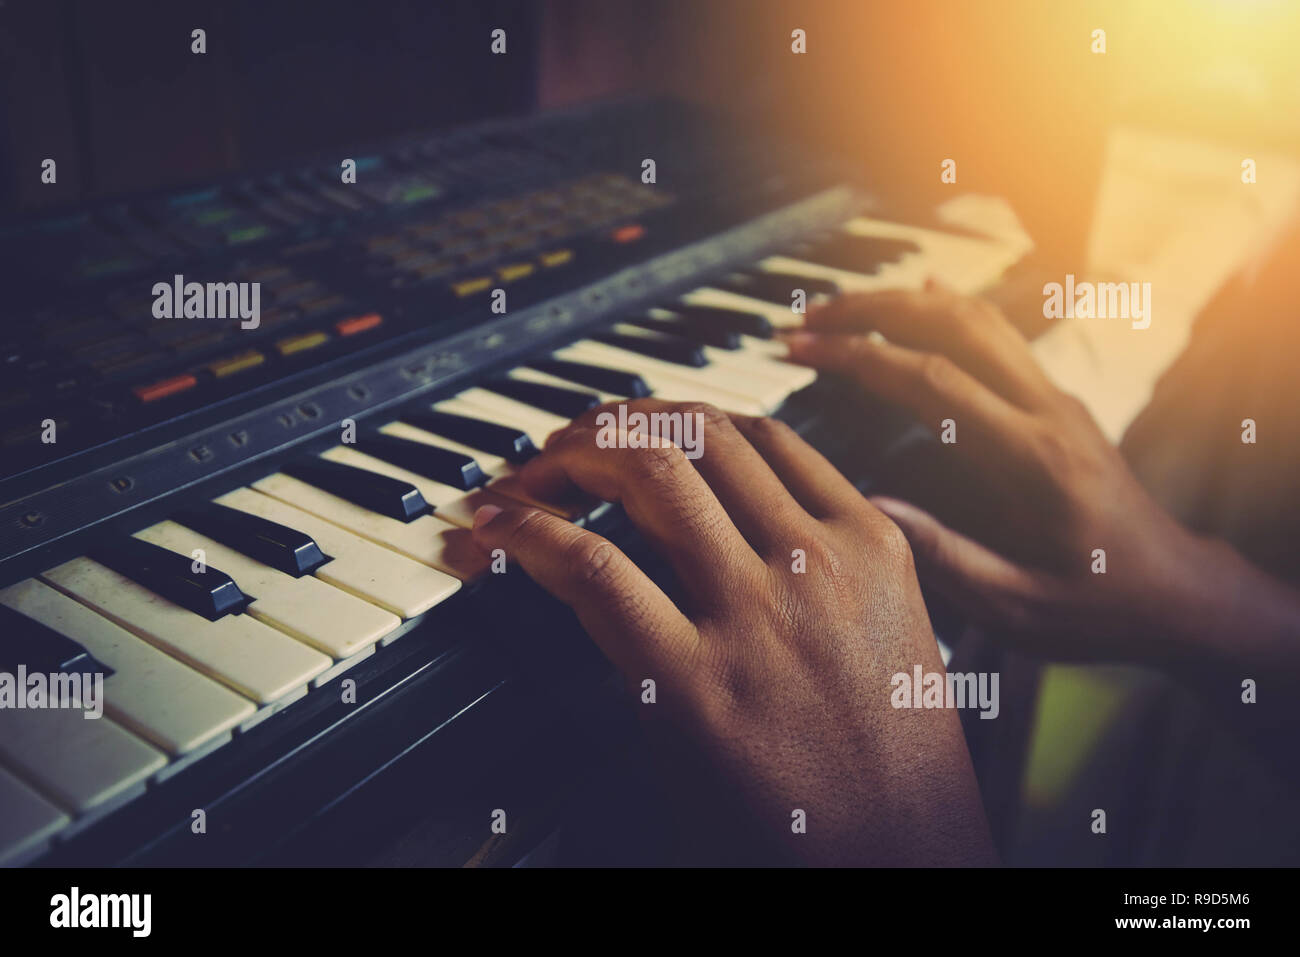 synthesizer piano player musician playing keyboar / MIDI keyboard electronic hands playing different chords on old piano keys on dark background vinta - Stock Image